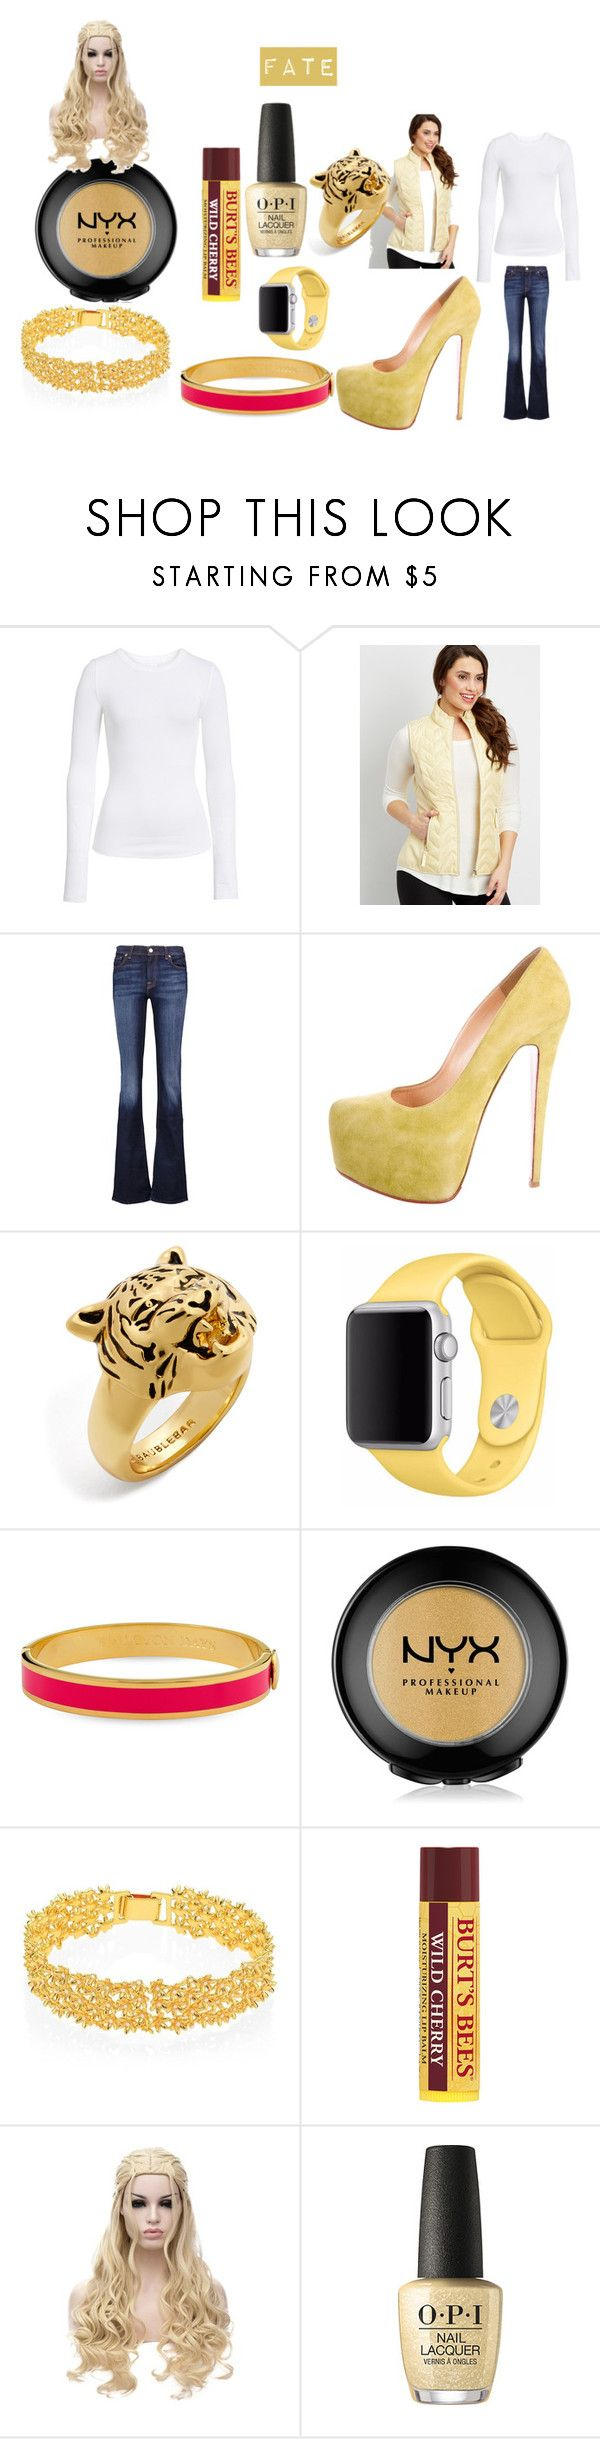 """""""Fate"""" by queen-posion-ivy on Polyvore featuring BP., maurices, 7 For All Mankind, Christian Louboutin, BaubleBar, Apple, Halcyon Days, NYX, Lele Sadoughi and HorsemanCouncil"""